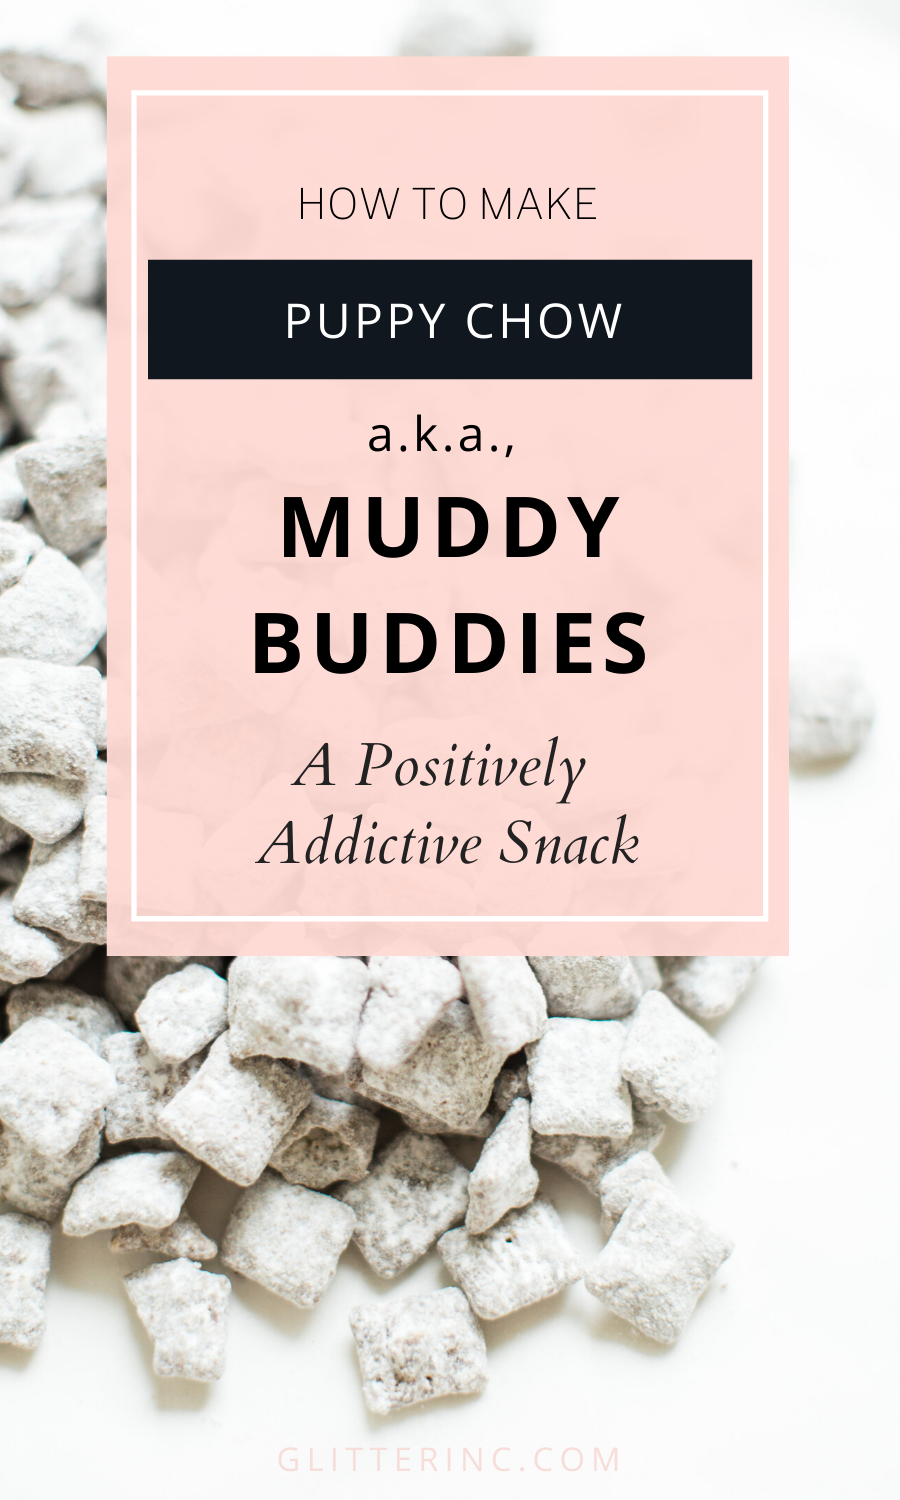 Positively addictive classic Puppy Chow Muddy Buddies - comes together in minutes, is no-bake, and can be made up in big batches - perfect for parties and gifting! Click through for the recipe. #dairyfree #vegan #vegandessert | glitterinc.com | @glitterinc